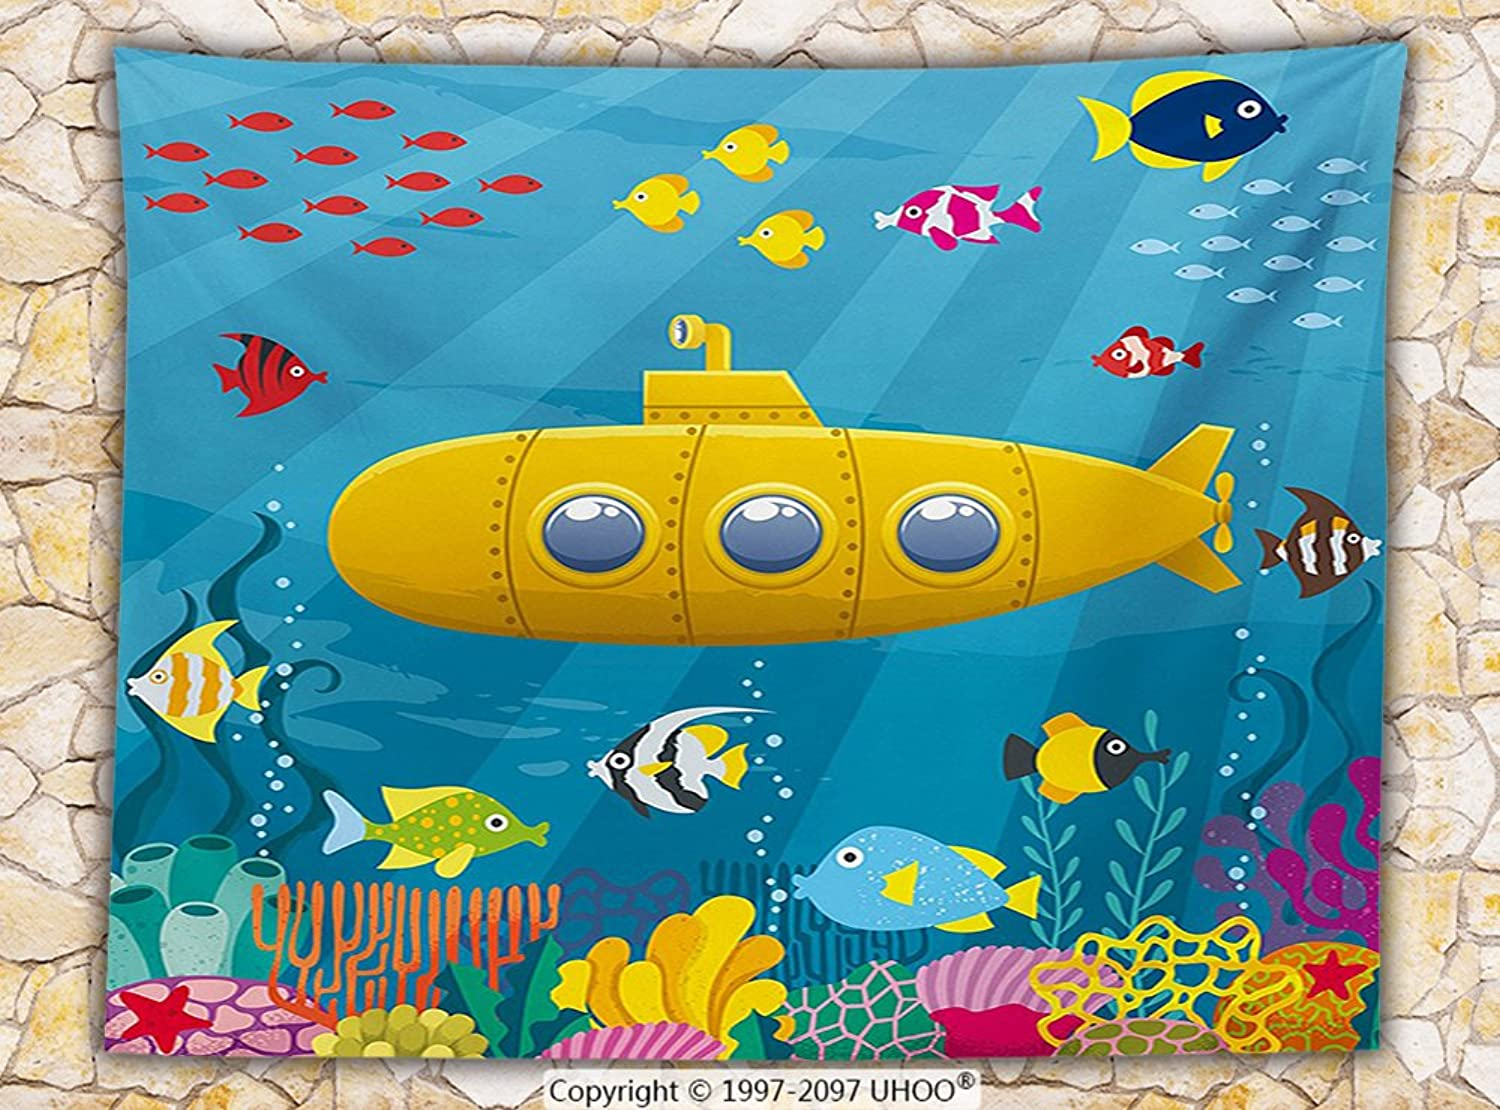 Yellow Submarine Fleece Throw Blanket Coral Reef with colorful Fish Ocean Life Marine Creatures Tropical Kids Throw